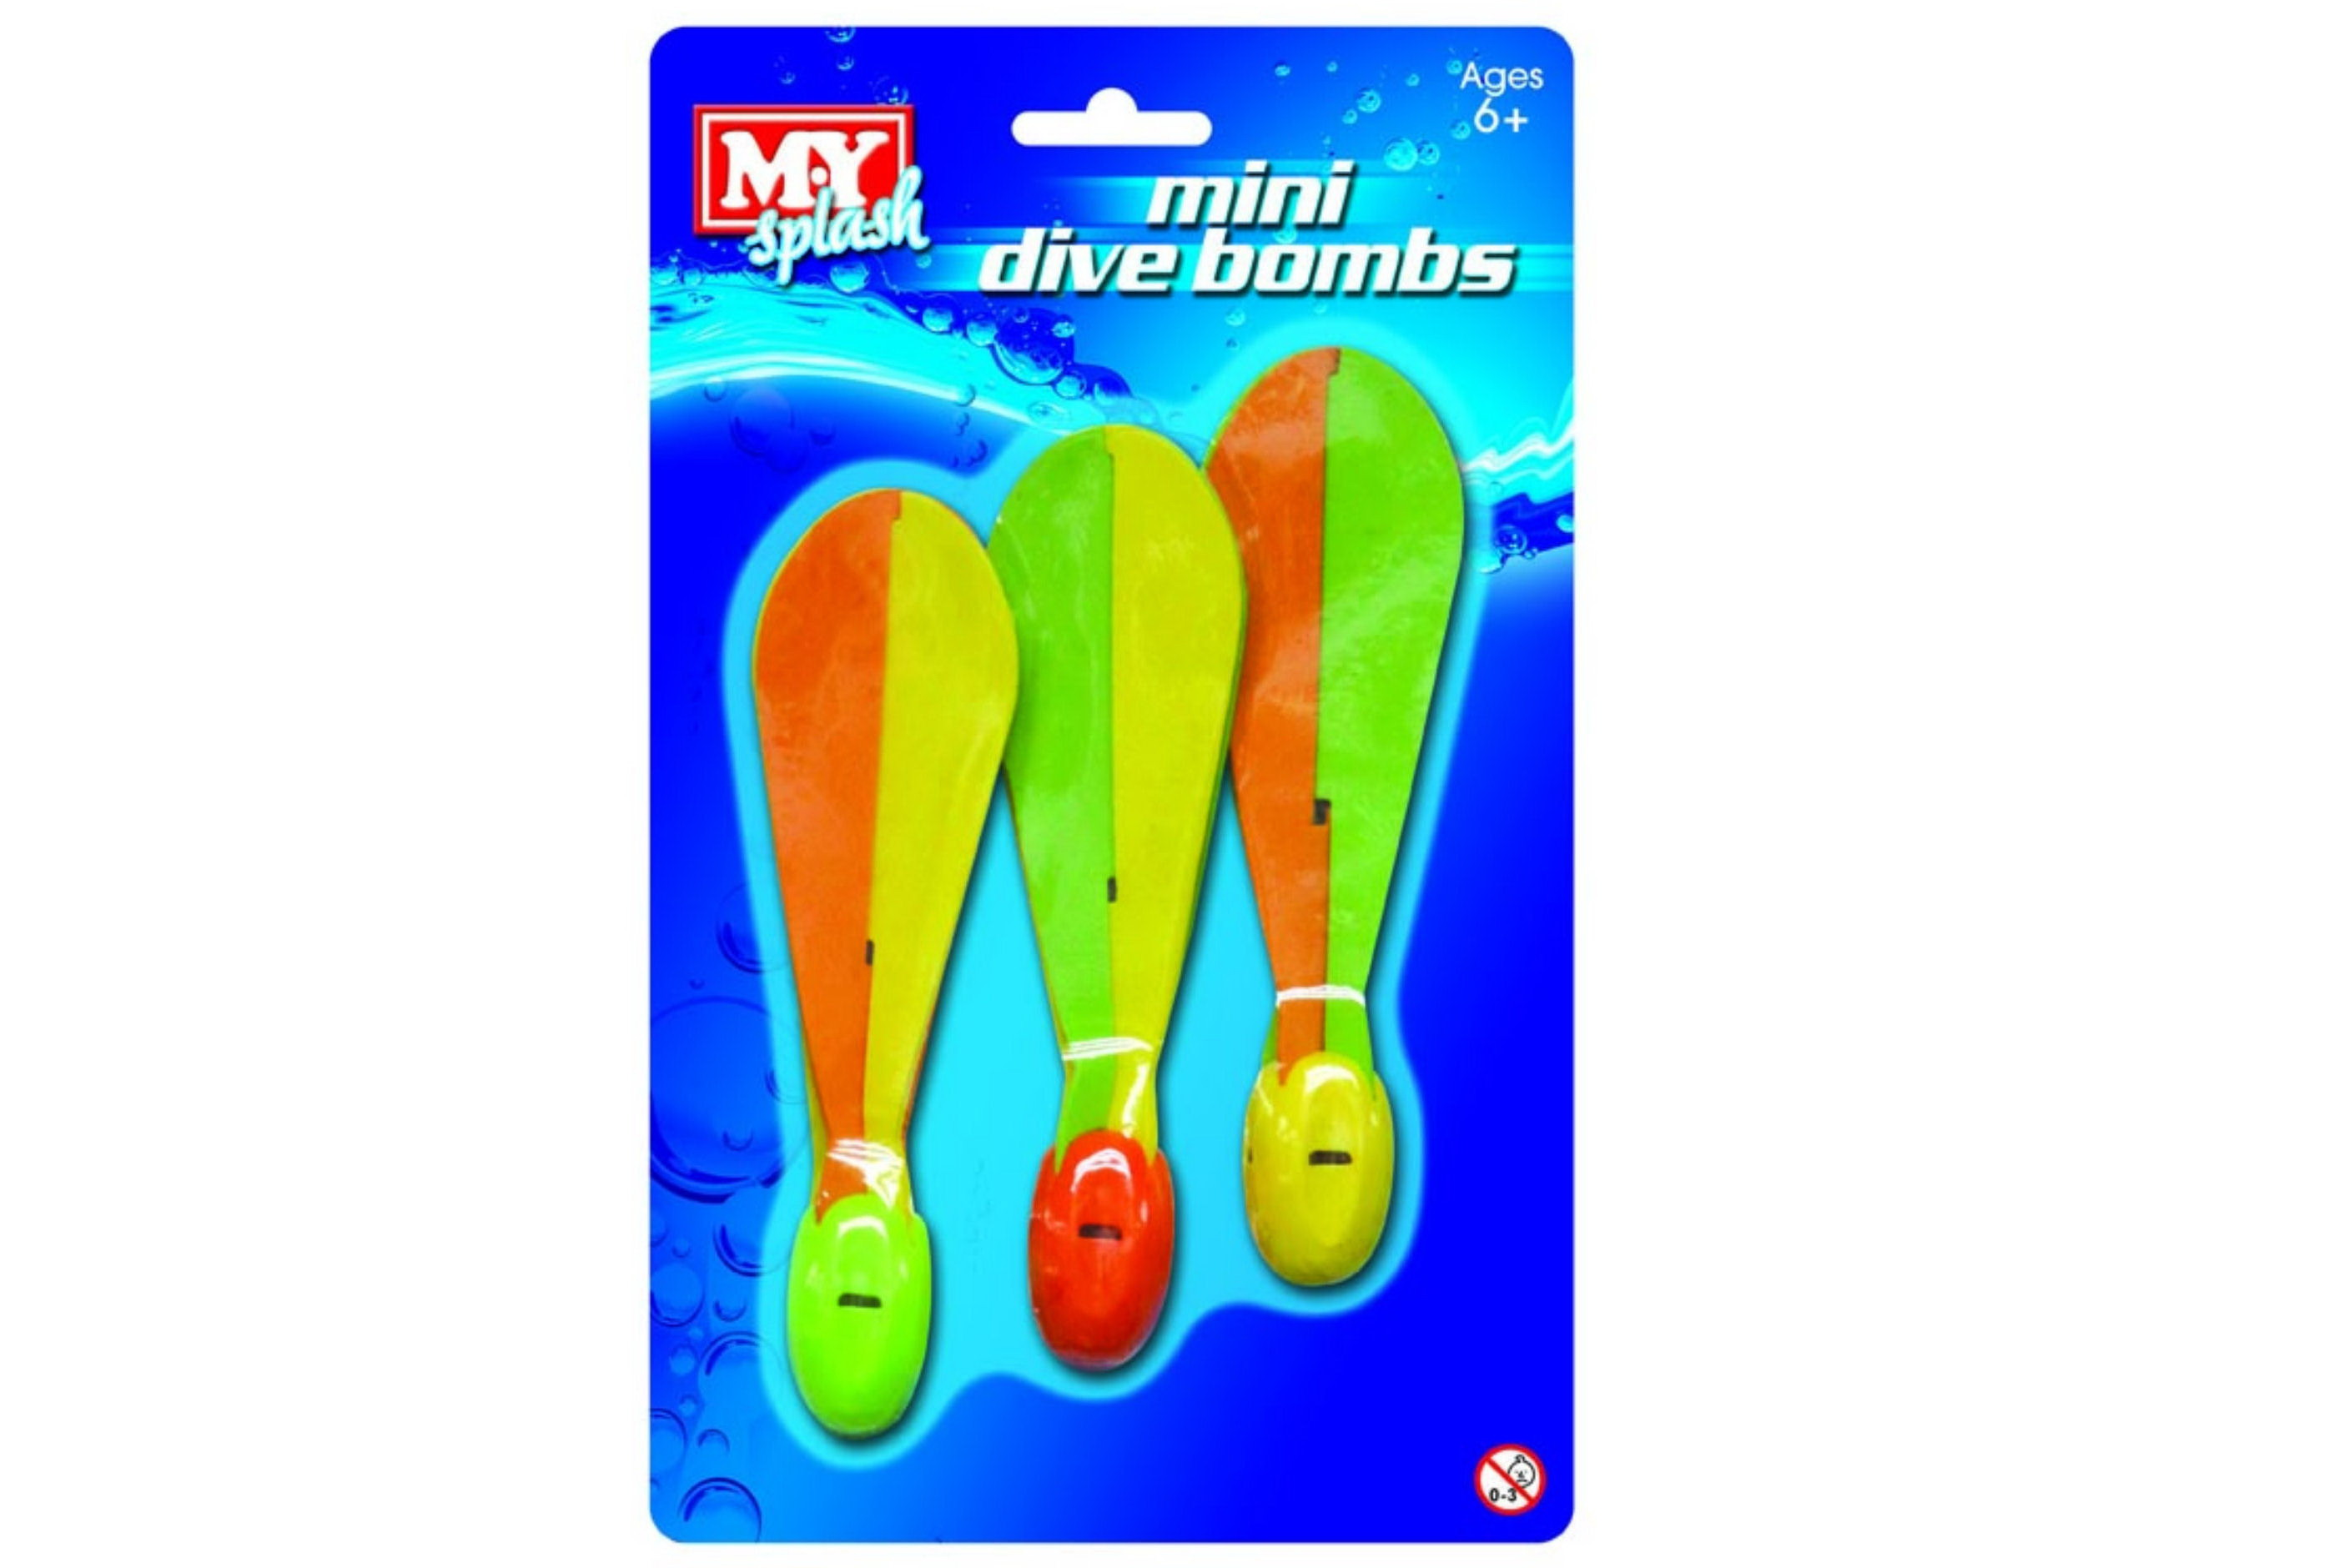 """3pc Mini Dive Bombs """"M.Y"""" On Blistercard"""